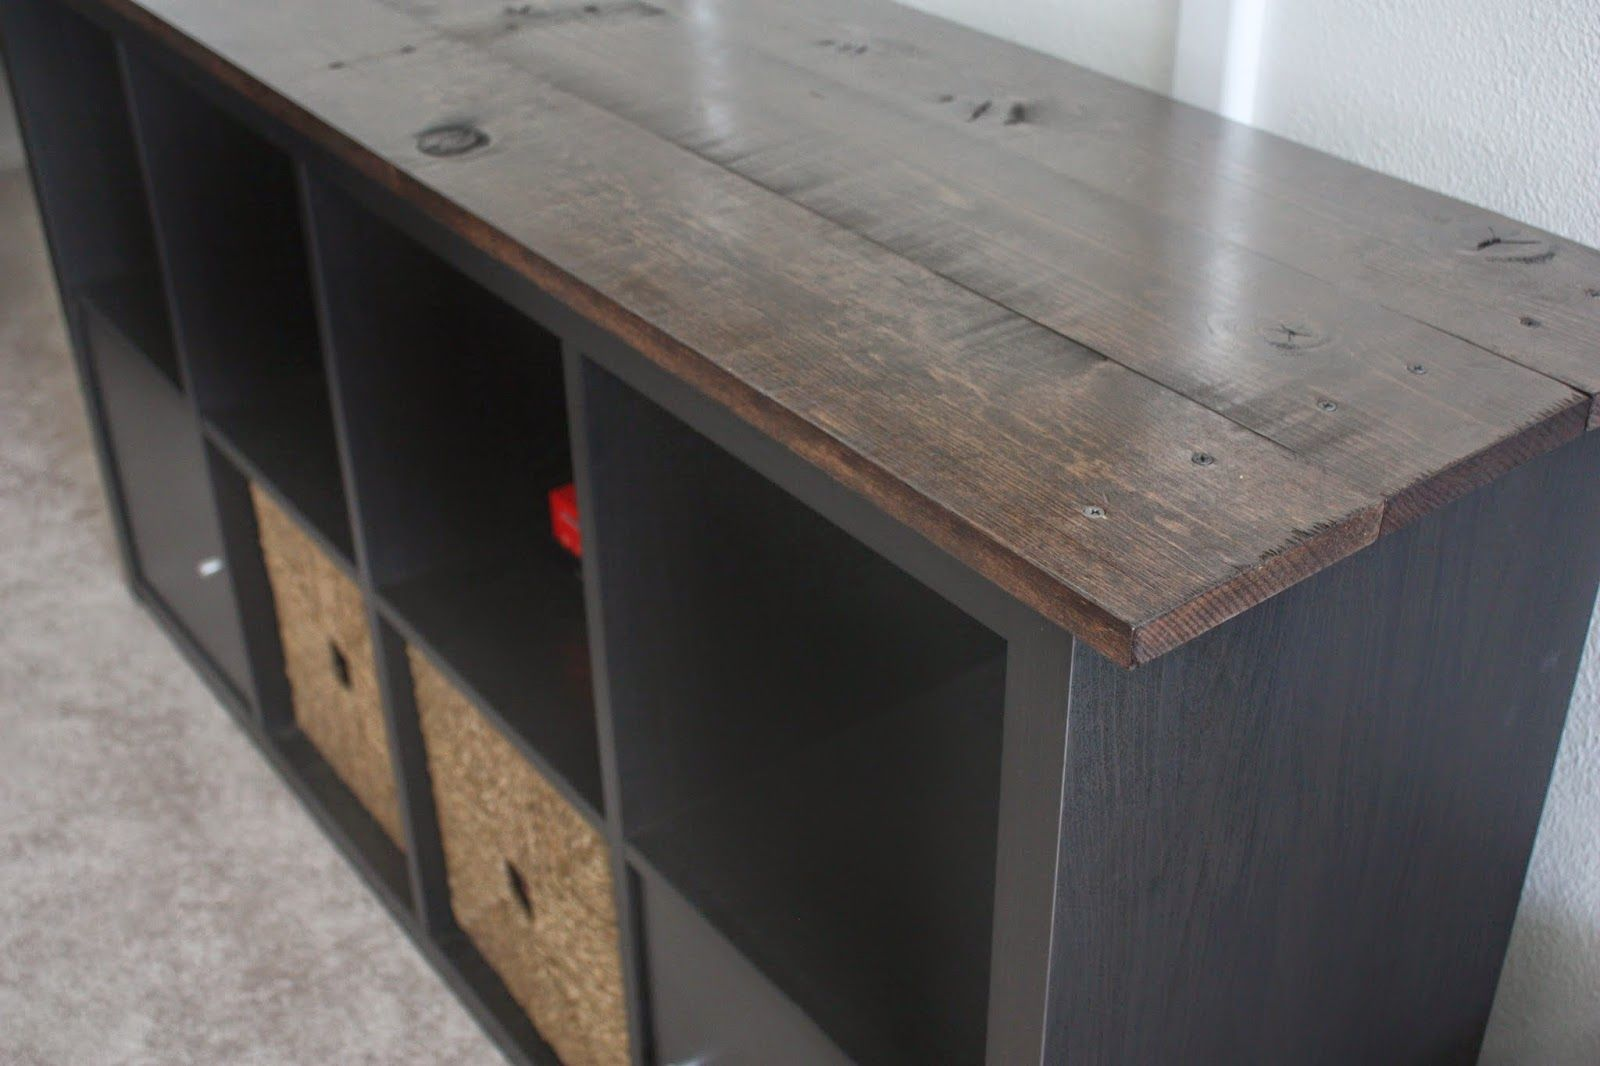 ikea kallax hack ikea expedit hack very easy and small change to spruce up this old tv stand. Black Bedroom Furniture Sets. Home Design Ideas